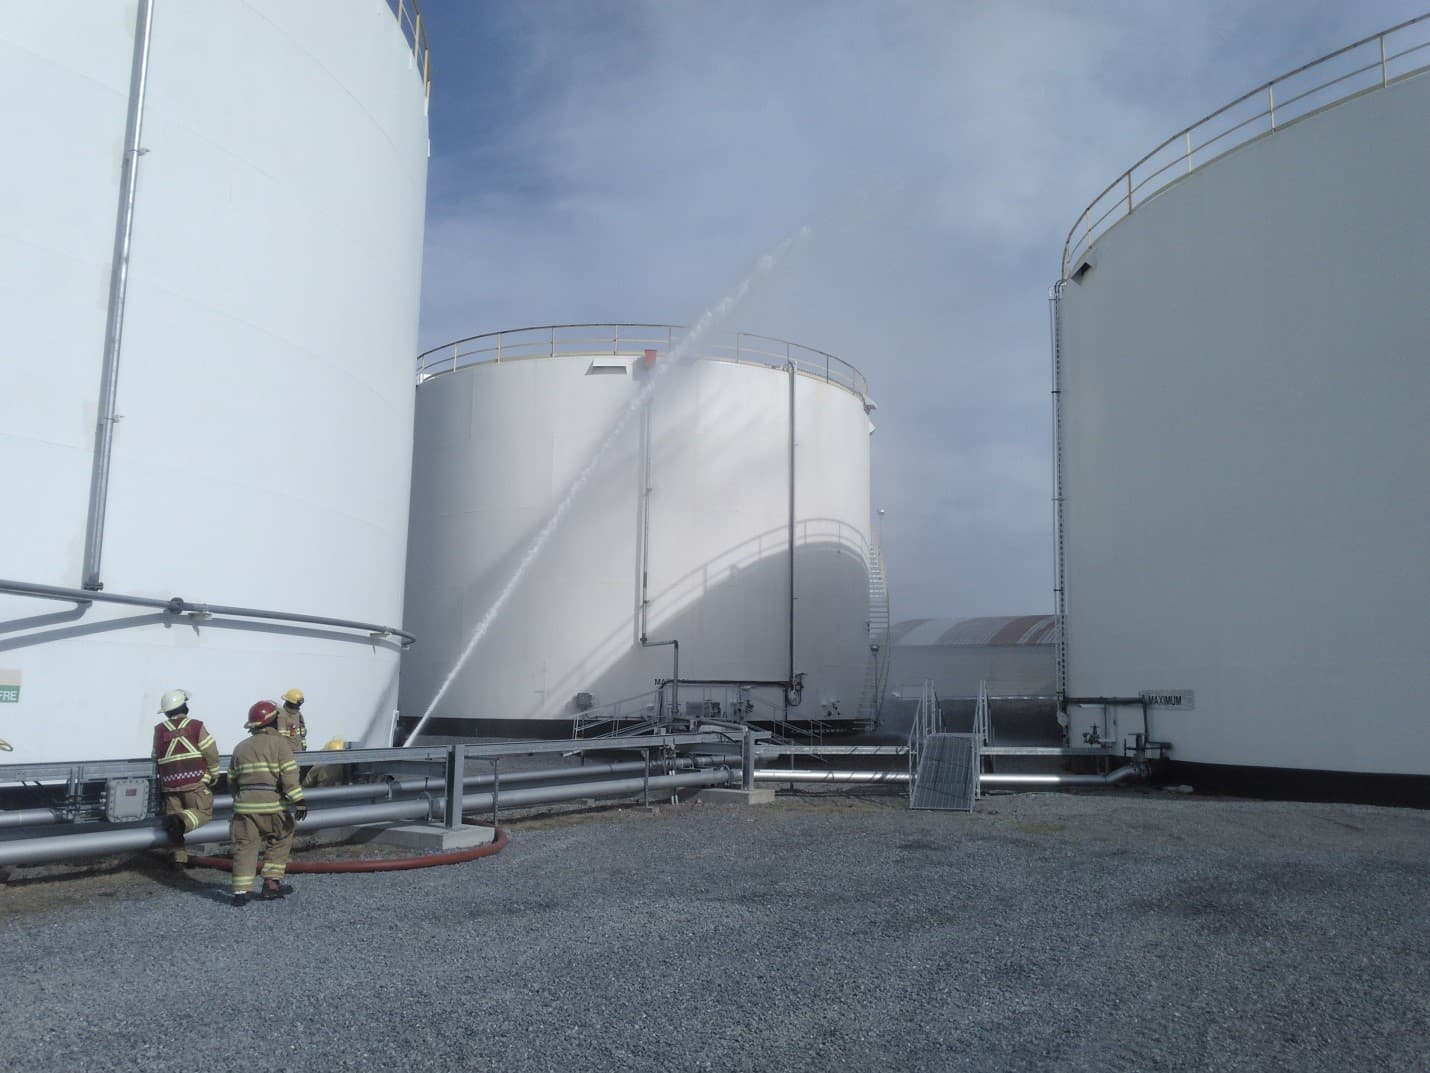 Suncor is working with key Rimouski stakeholders to further mitigate risks associated with terminal activities.